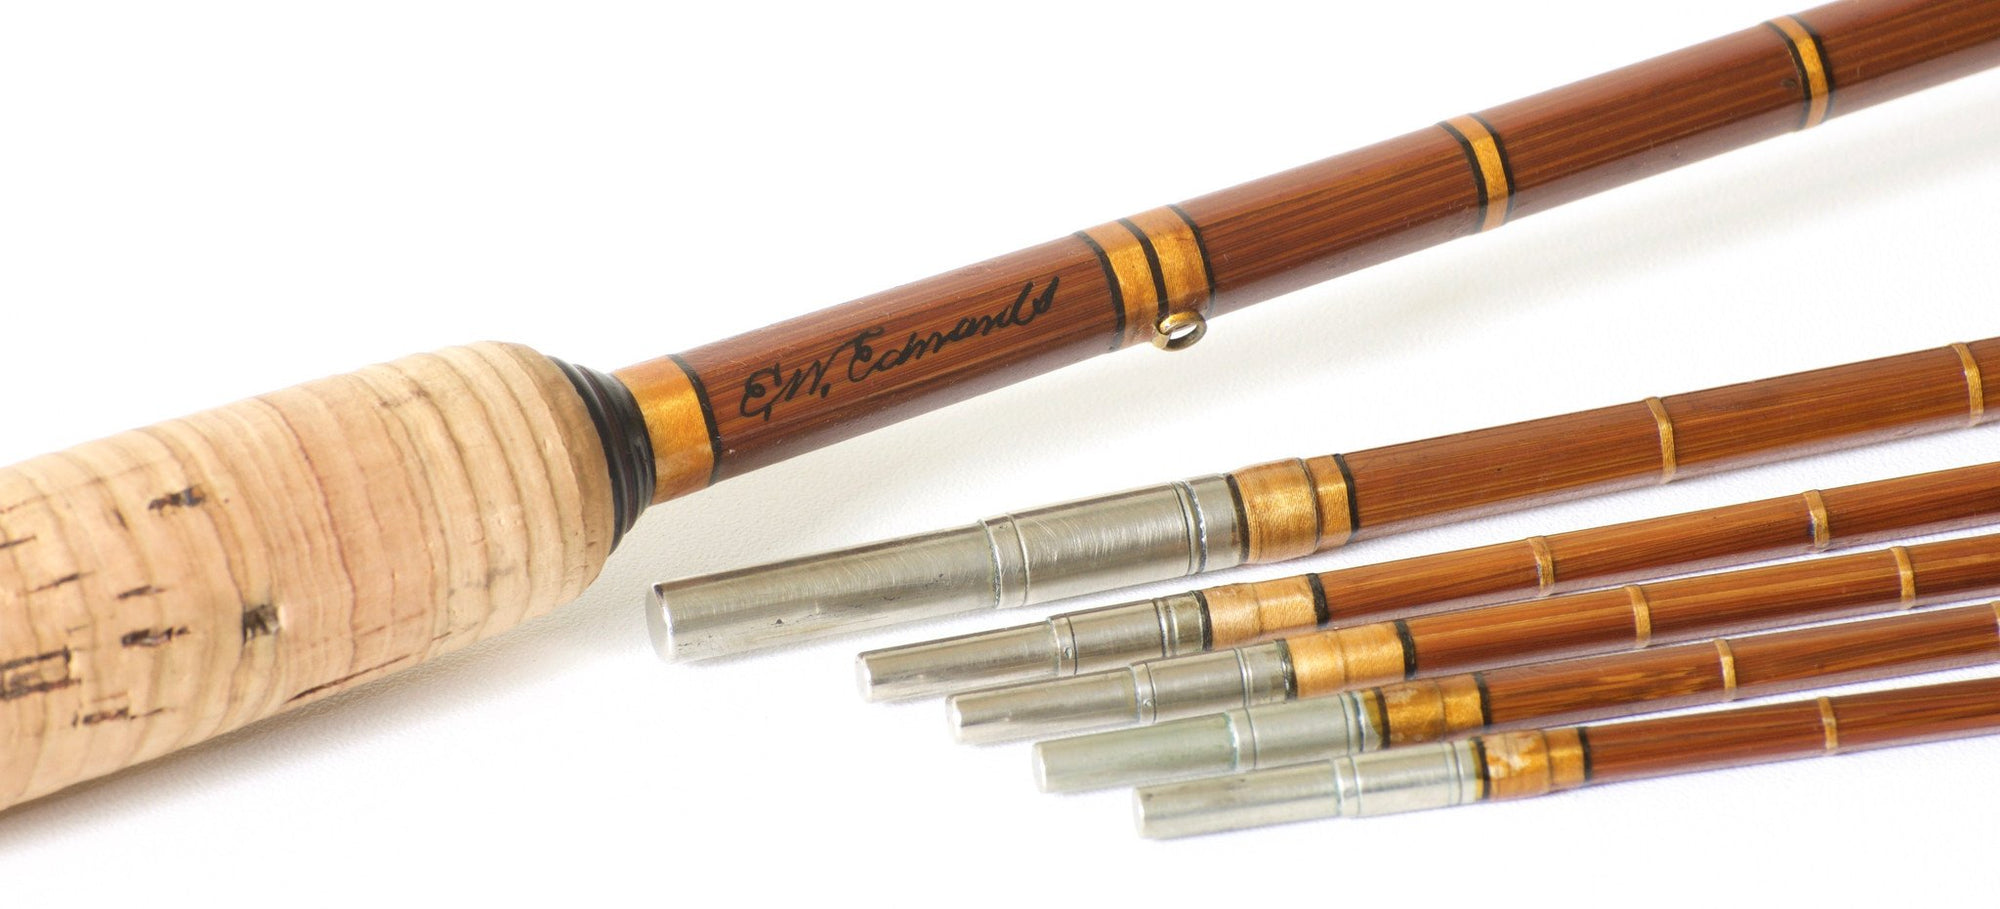 Edwards, E.W. -- 9' Brewer Era Bamboo Rod